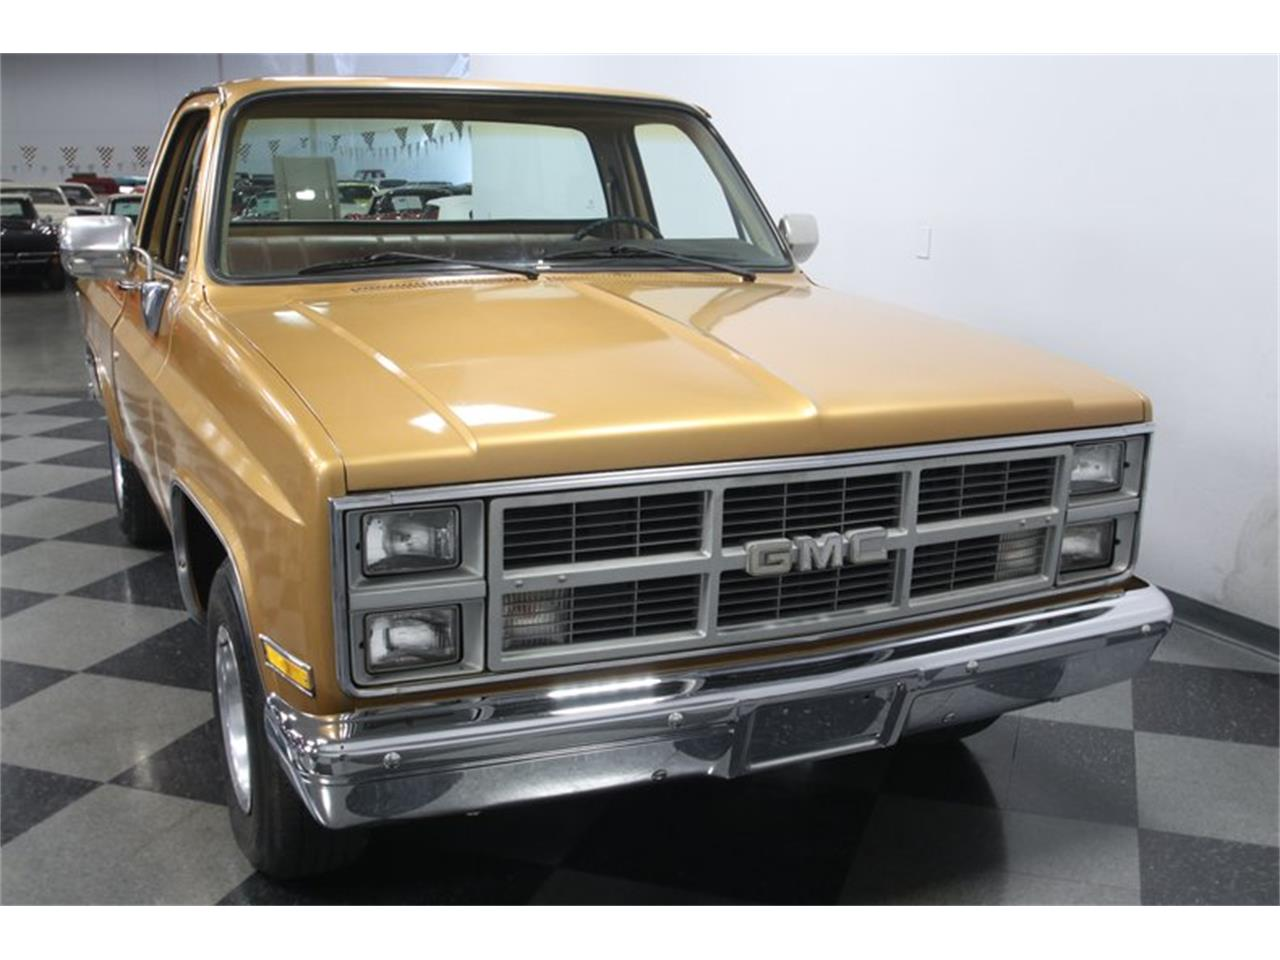 1984 GMC Sierra (CC-1328808) for sale in Concord, North Carolina